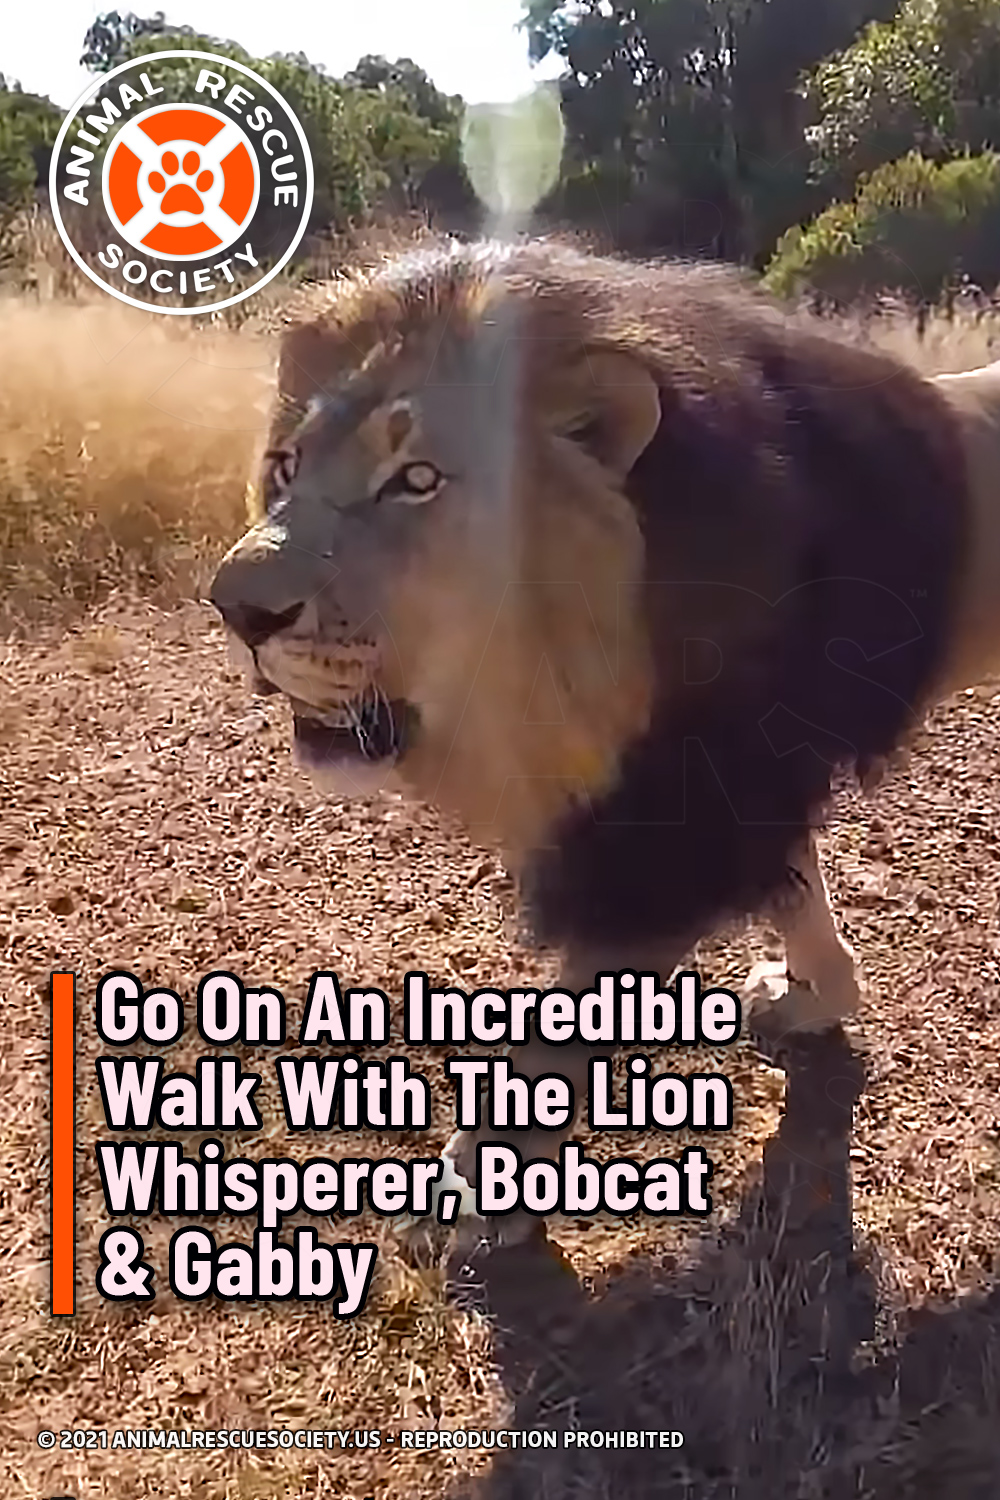 Go On An Incredible Walk With The Lion Whisperer, Bobcat & Gabby